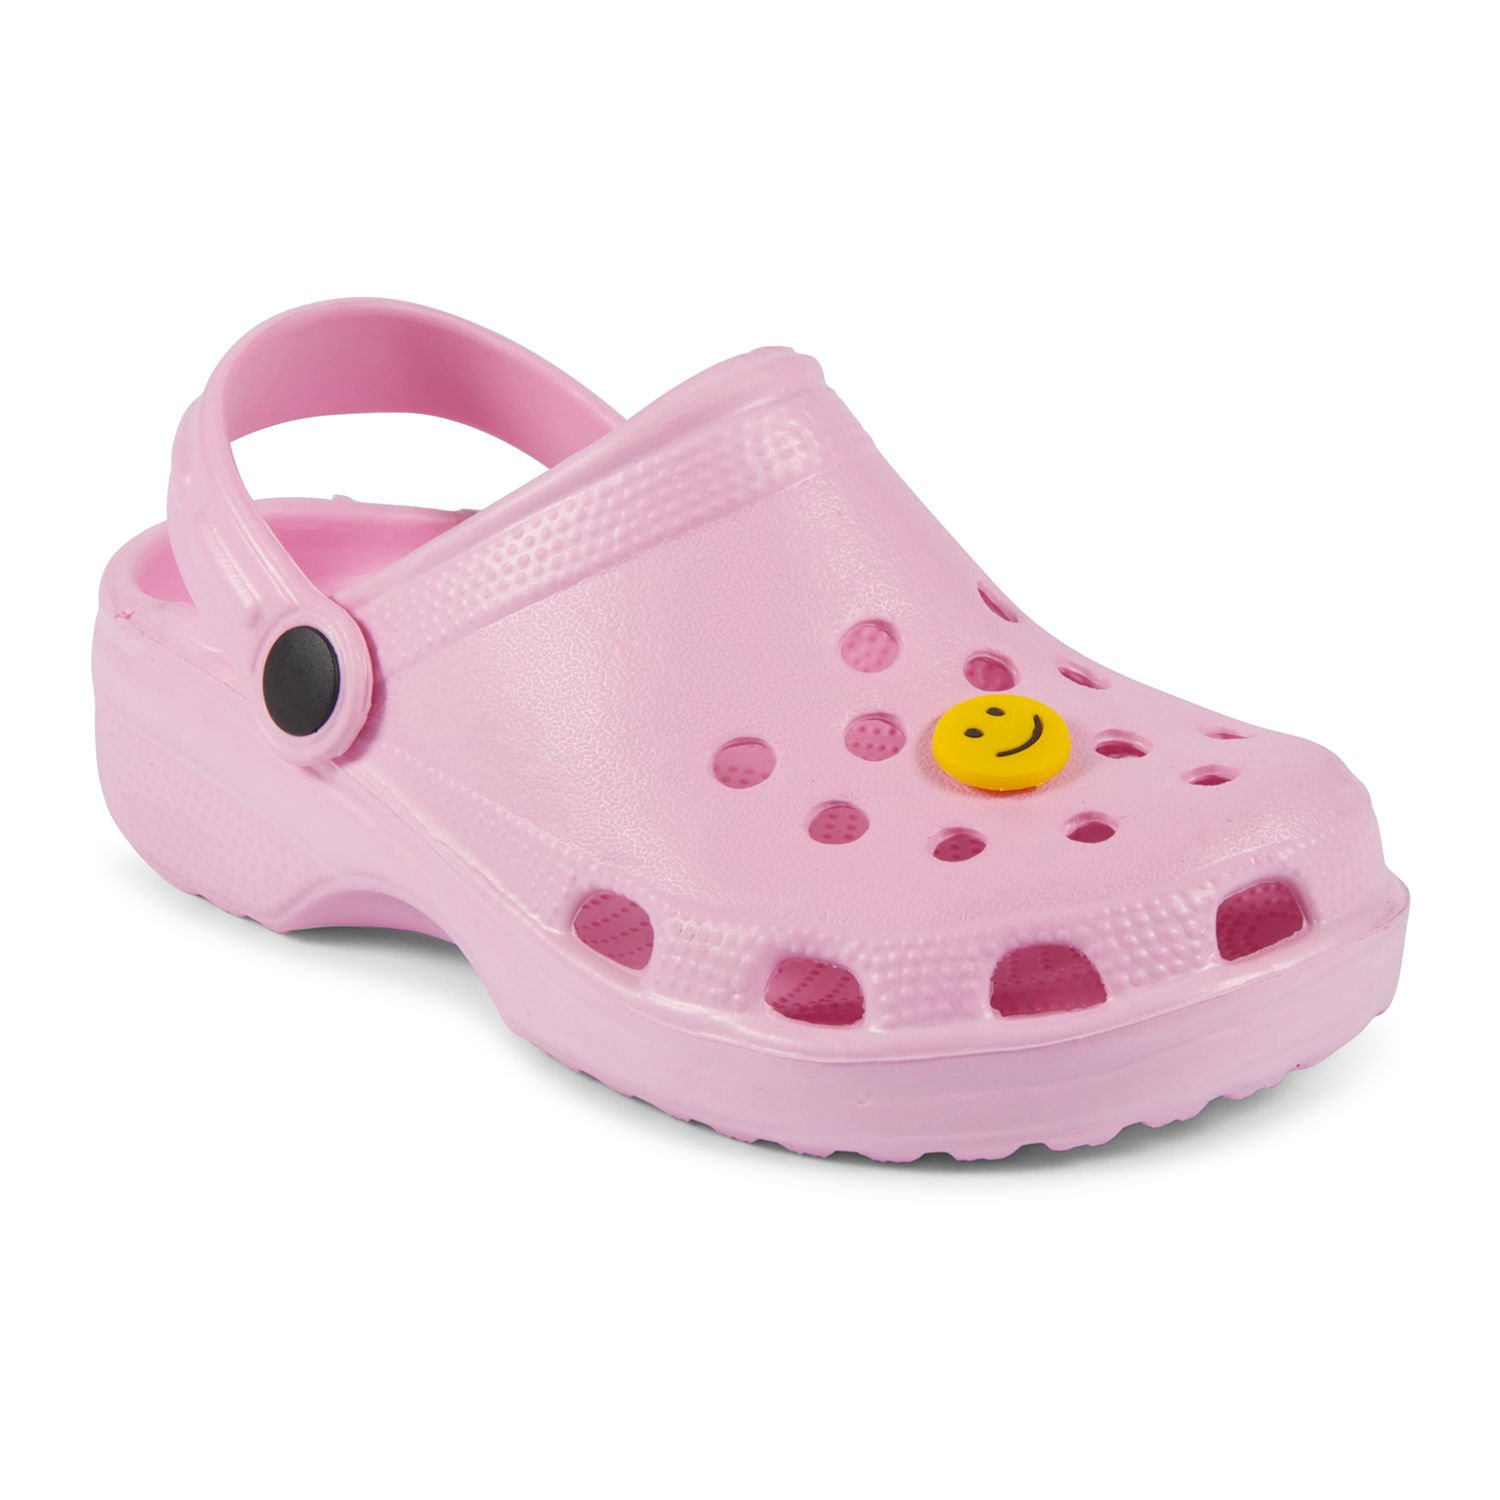 ab7bf6504eb33f Childrens Kids Beach Clogs Flip flops Jelly Sandals   free croc shoes  charm  Amazon.co.uk  Shoes   Bags